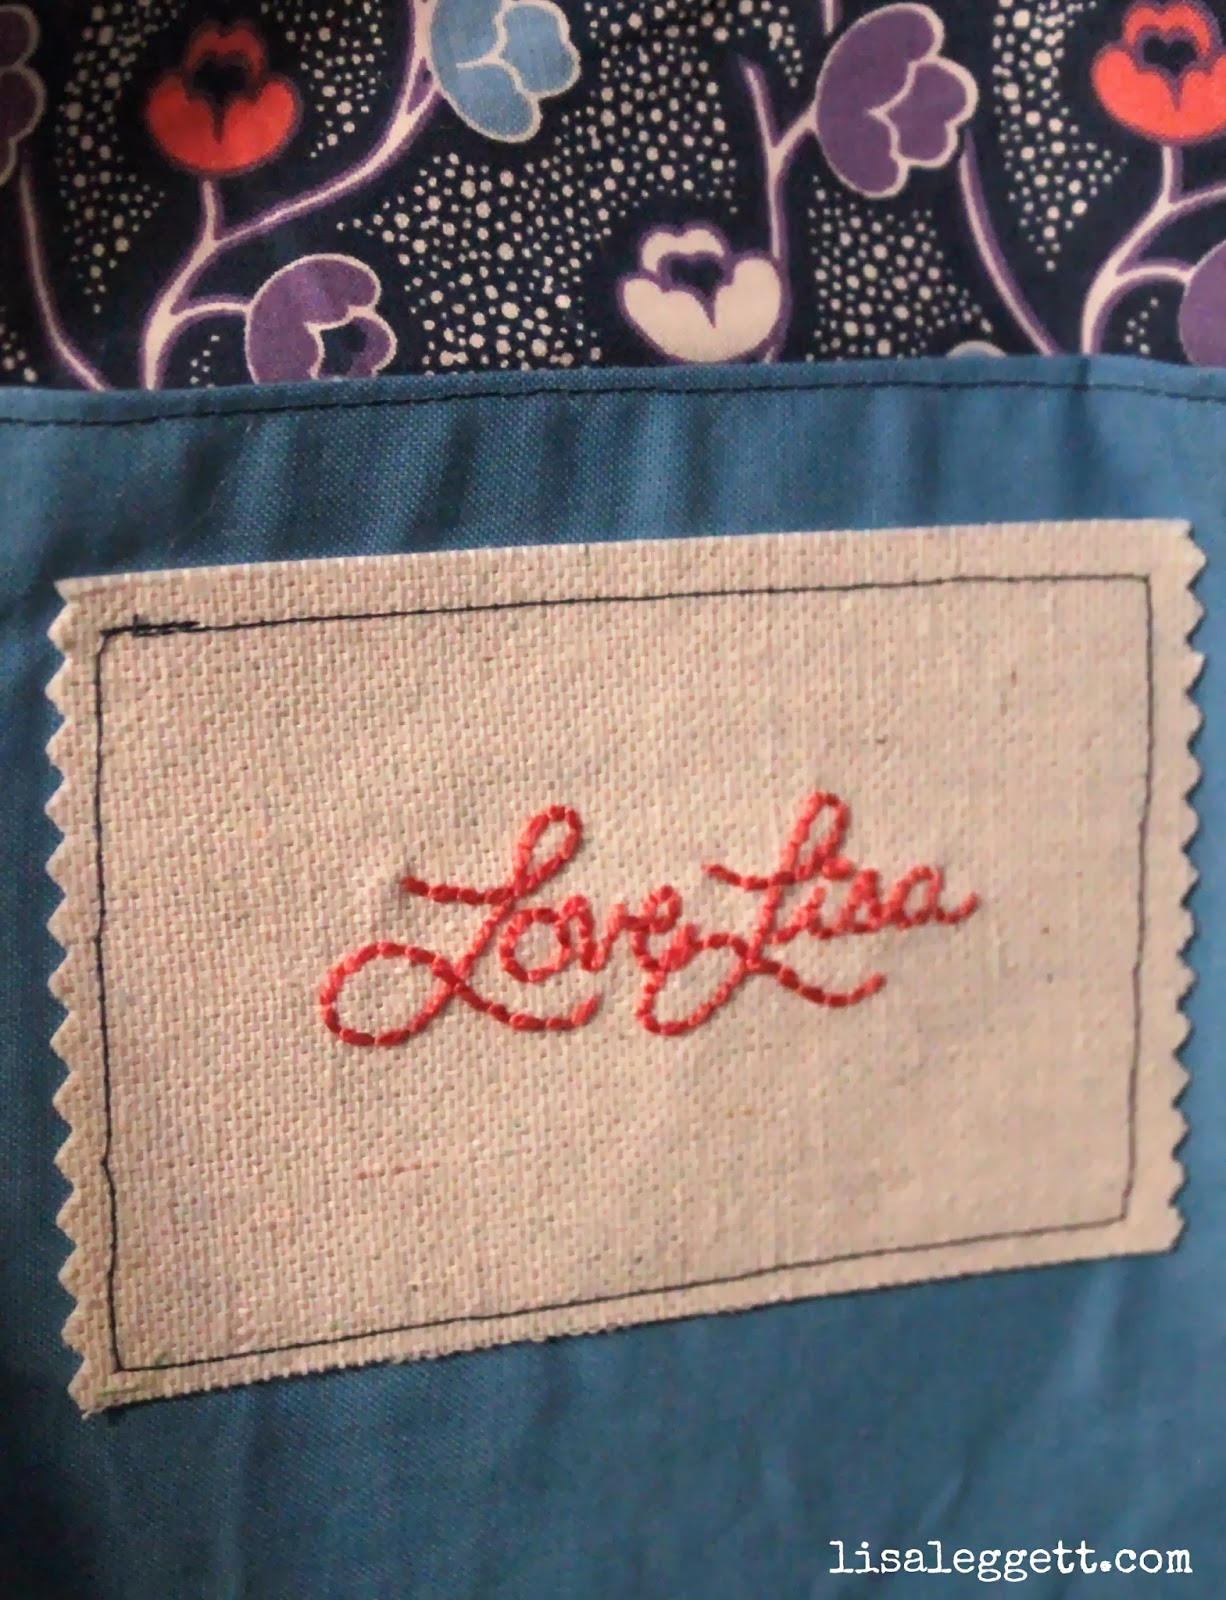 Hand stitched label on interior pocket